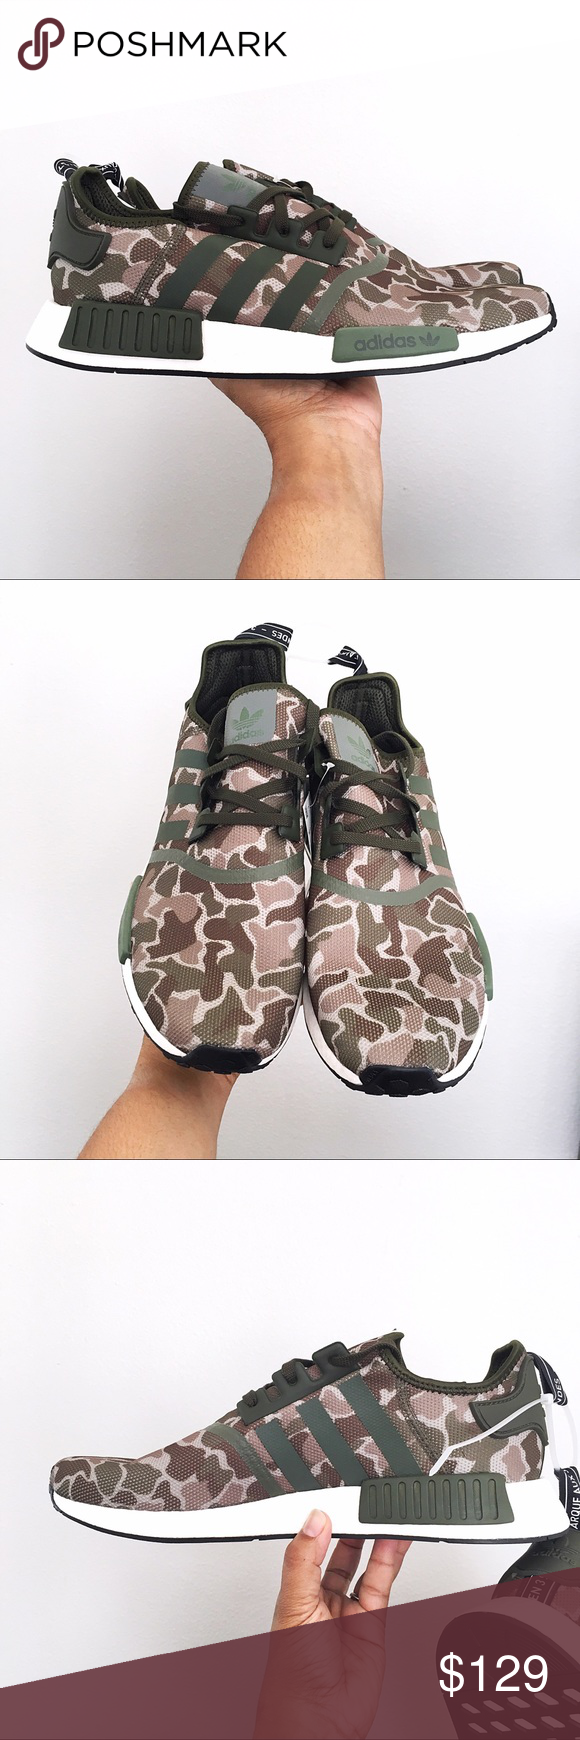 quality design e67d6 c9ddc Adidas NMD R1 Duck Camo Sesame Mens Size 13 Brand new in Box  No lid